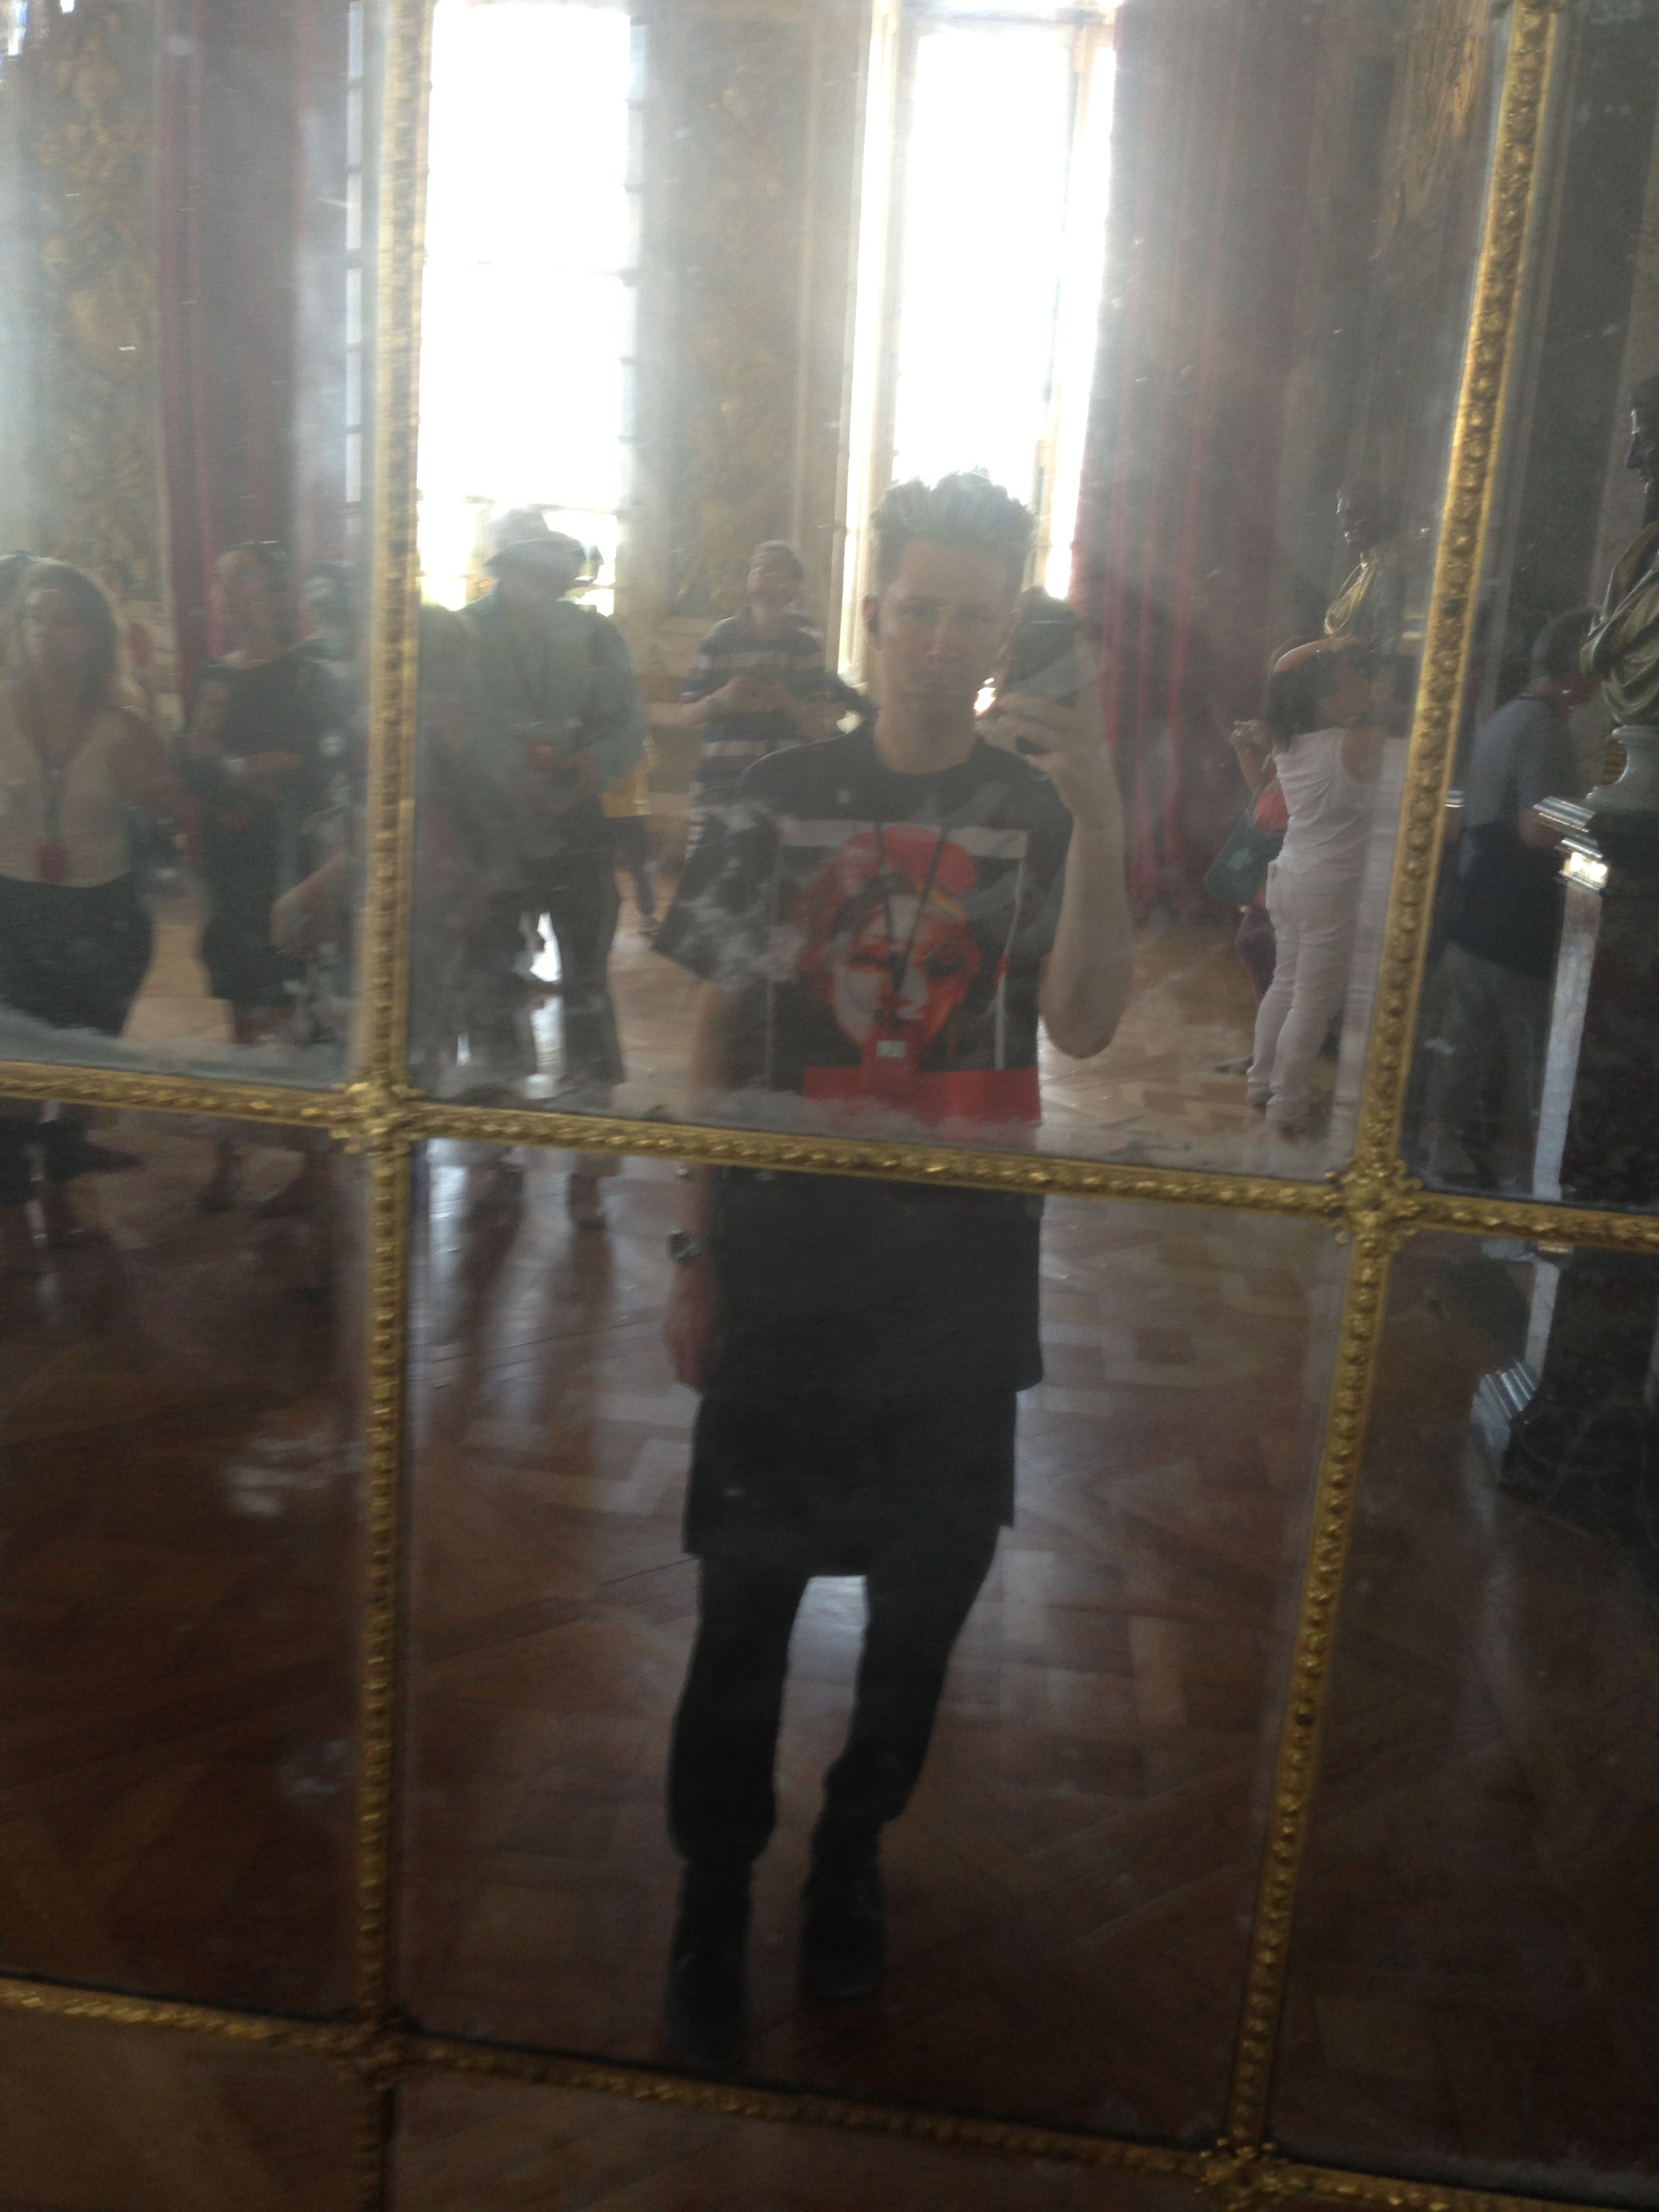 Me wearing givenchy at versailles in the hall of mirrors